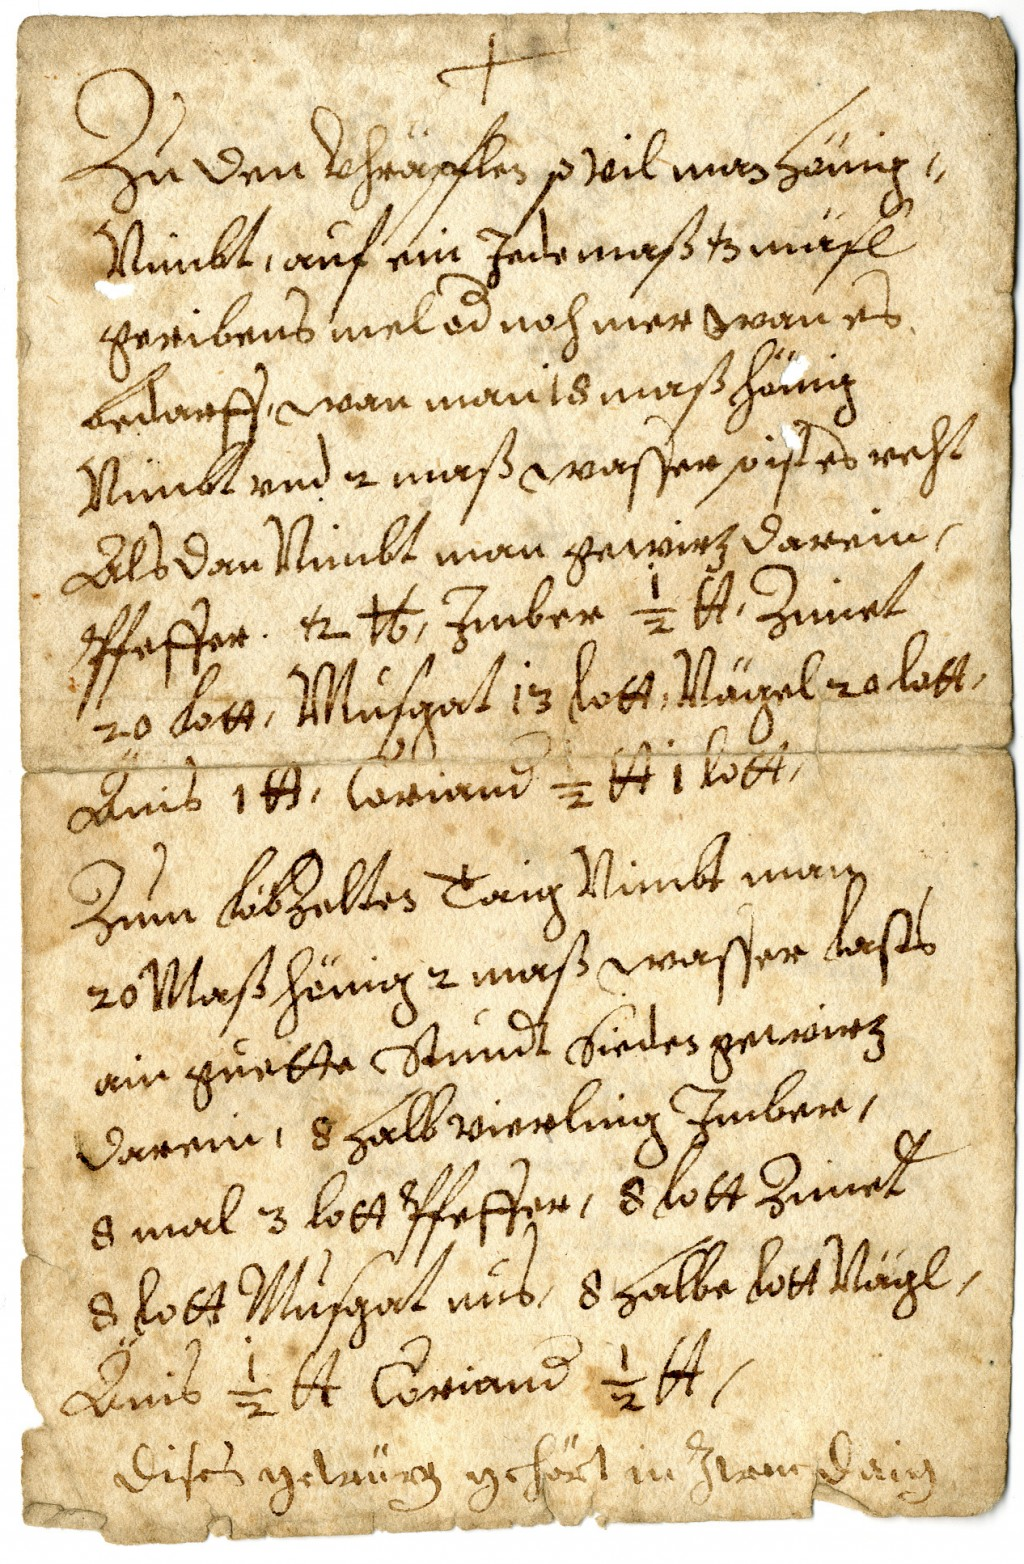 The undated image provided by the archdiocese Munich shows a recipe from the 17th century for Lebkuchen _ Germany's famous Christmas gingerbread. The ...